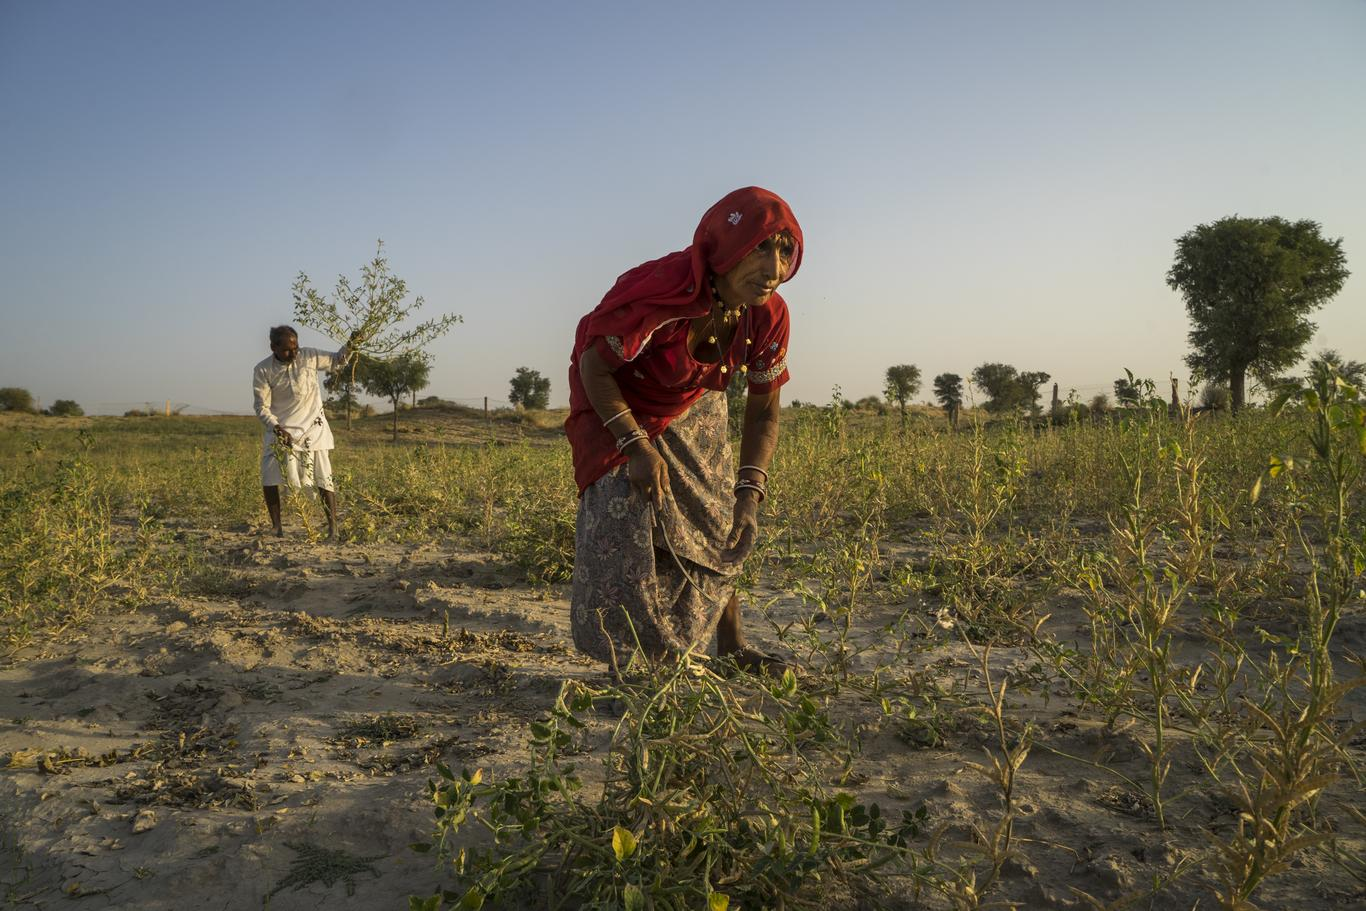 Guar farmer and his wife in their field, India